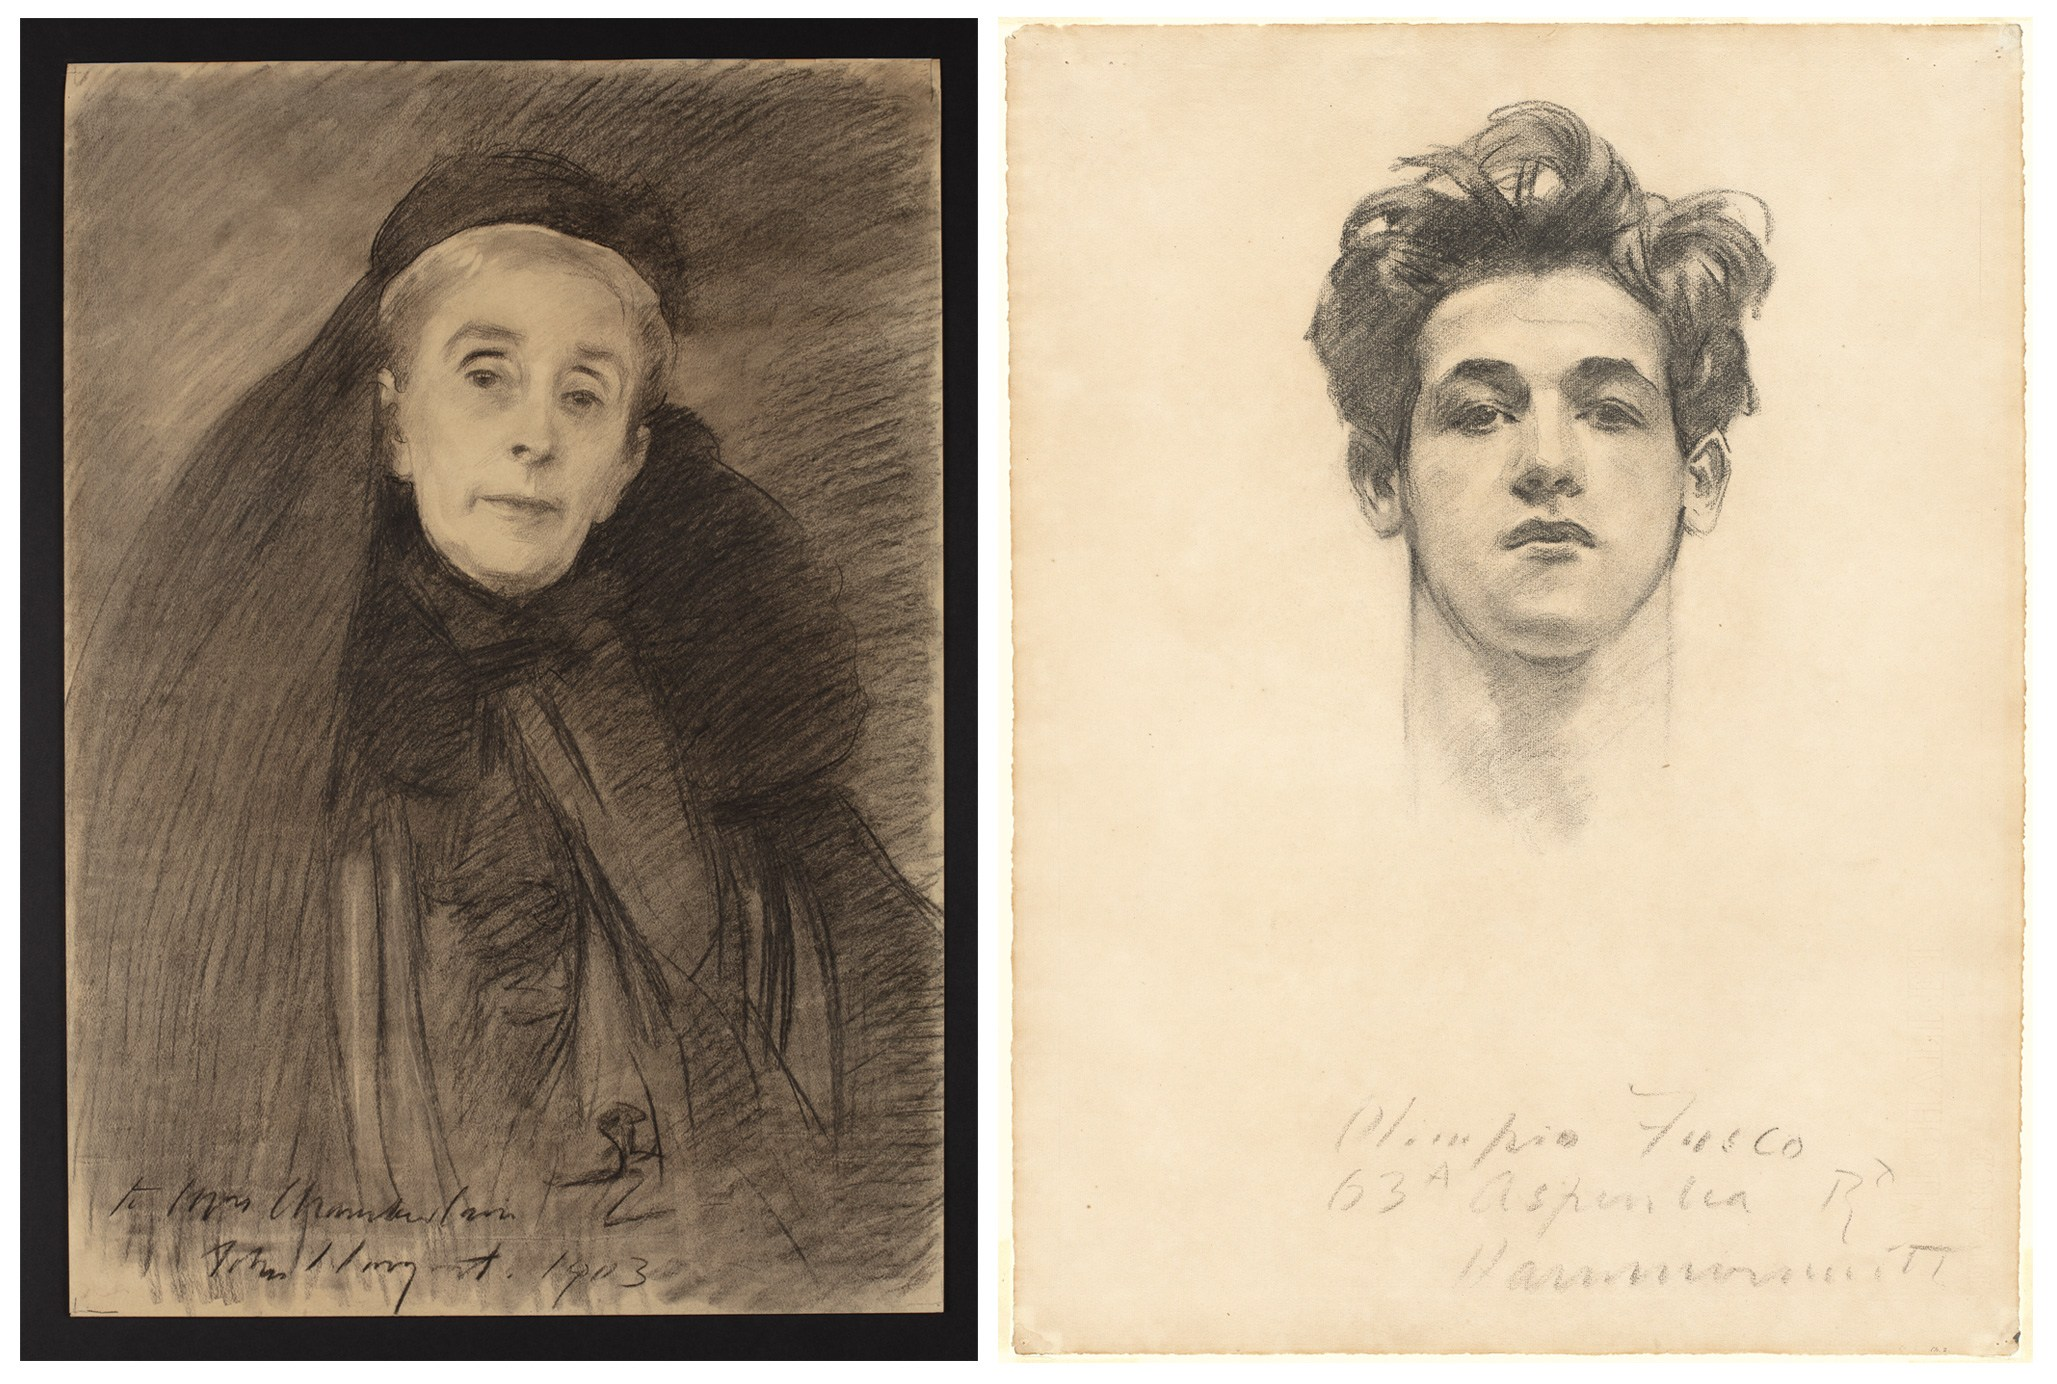 John Singer Sargent's Many Beauties, Male and Female, at the Morgan Library